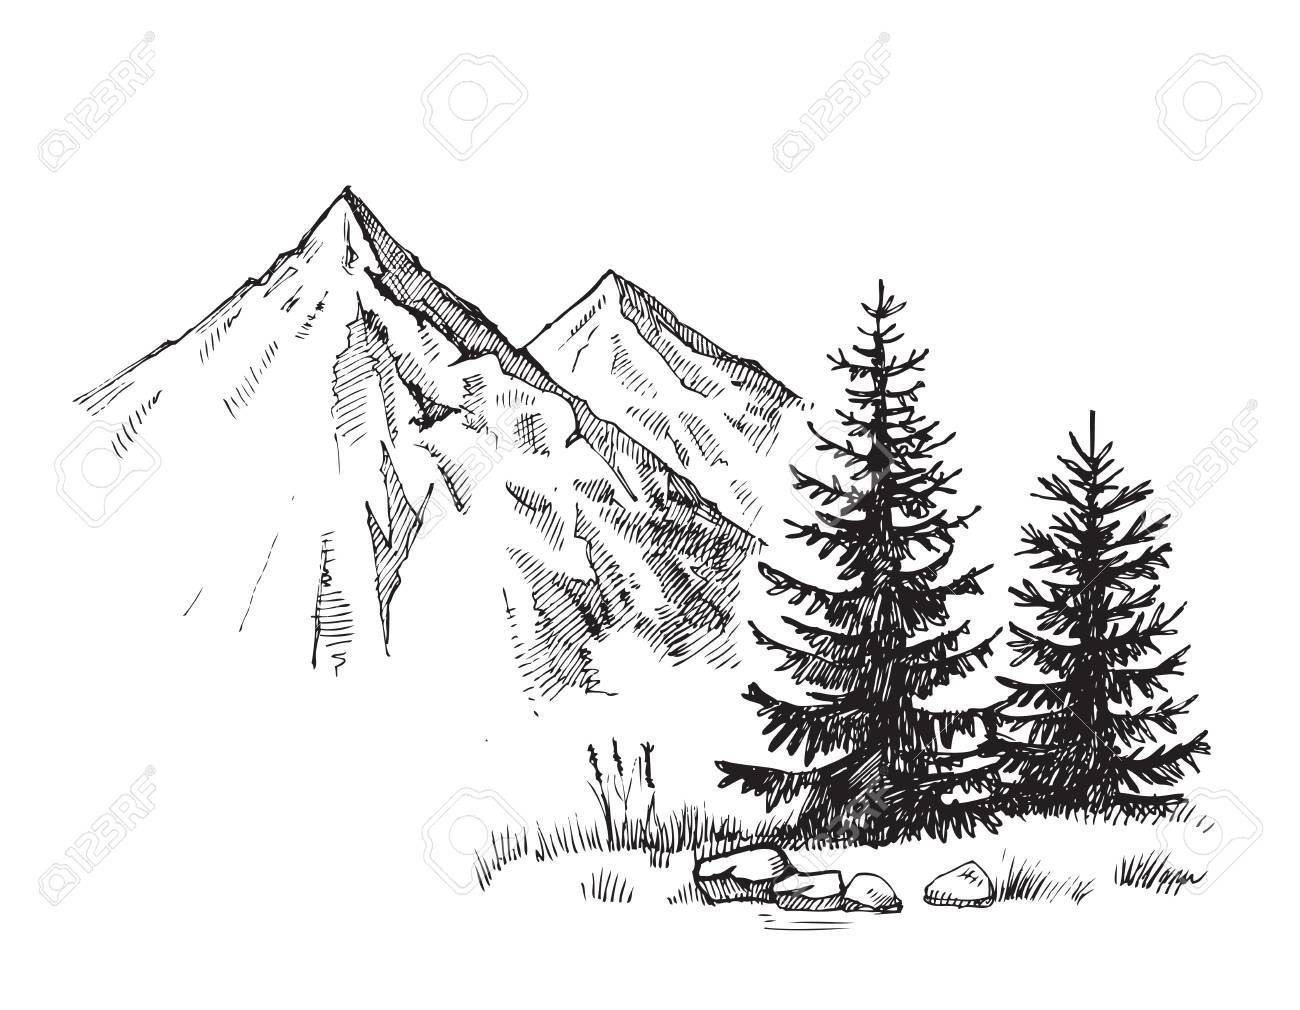 Hand drawn vector illustration of mountain landscape - 67218938